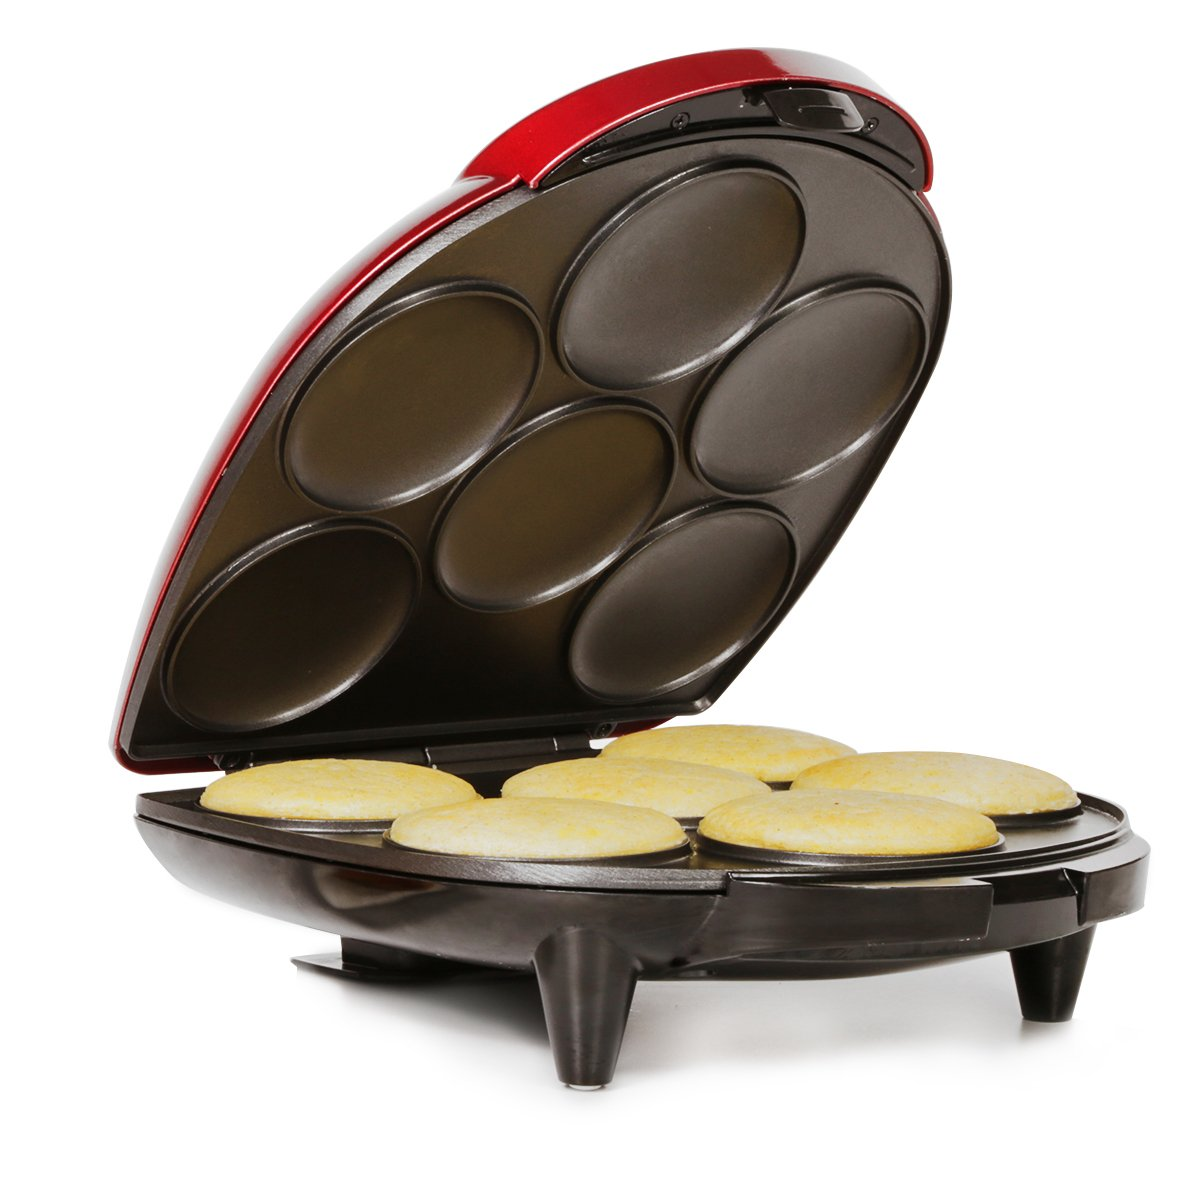 Holstein Housewares HU-09005R-M Arepa Maker - Metallic Red